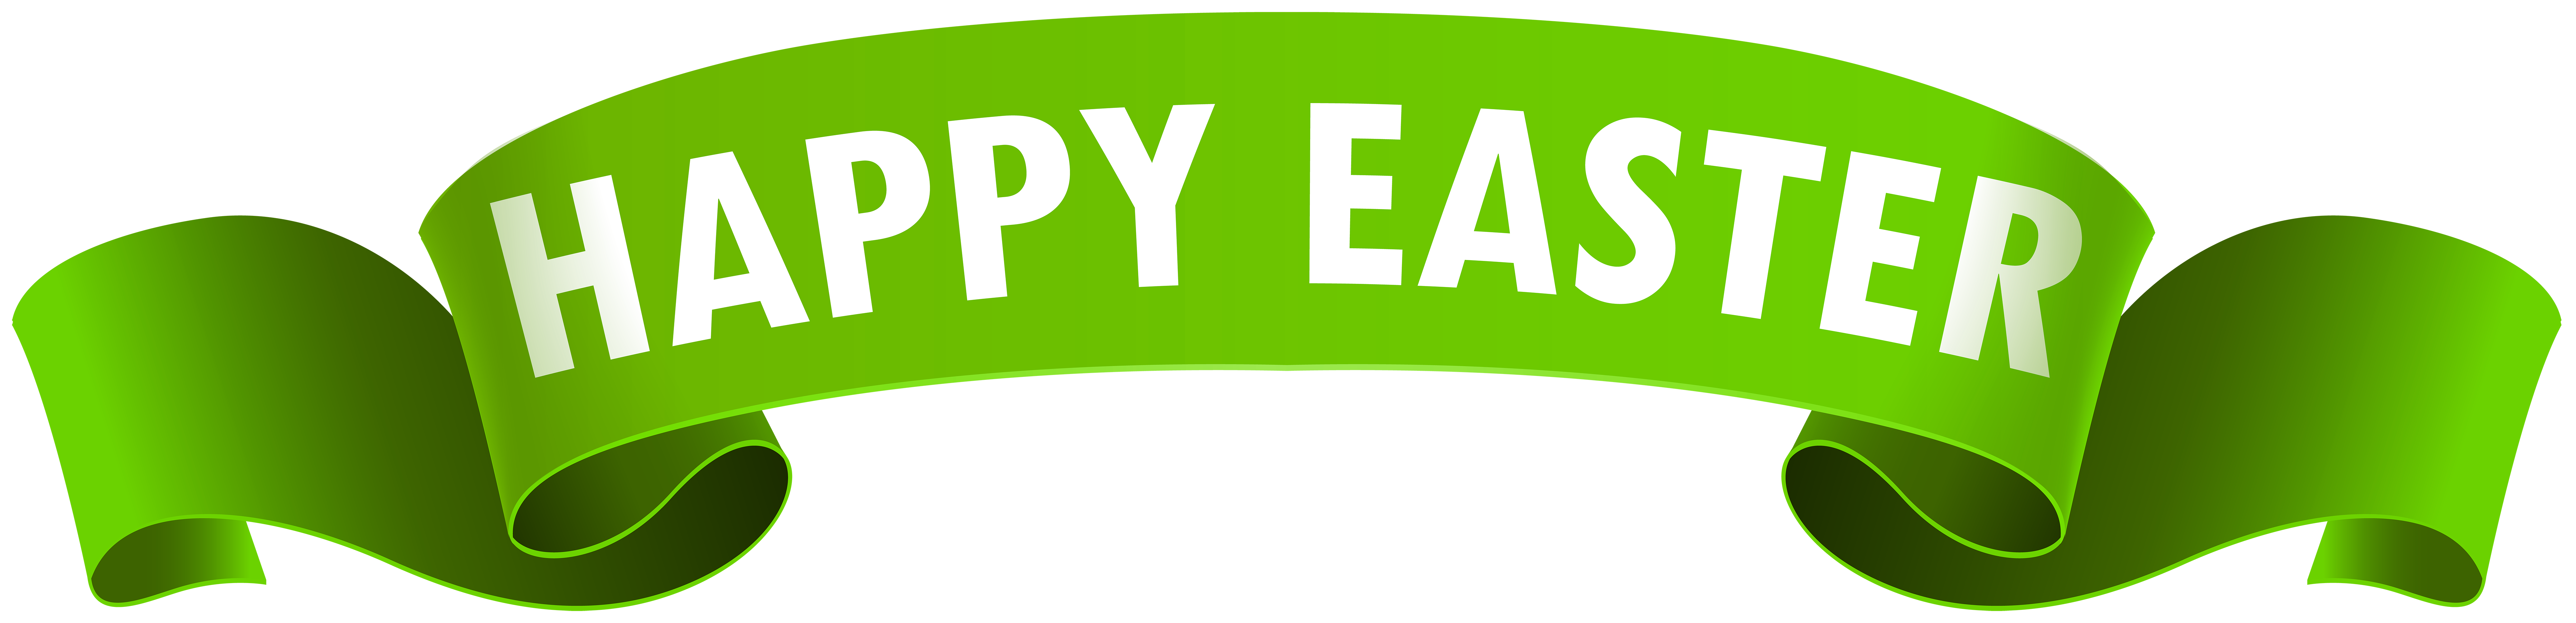 Happy easter png green. Banner image gallery yopriceville